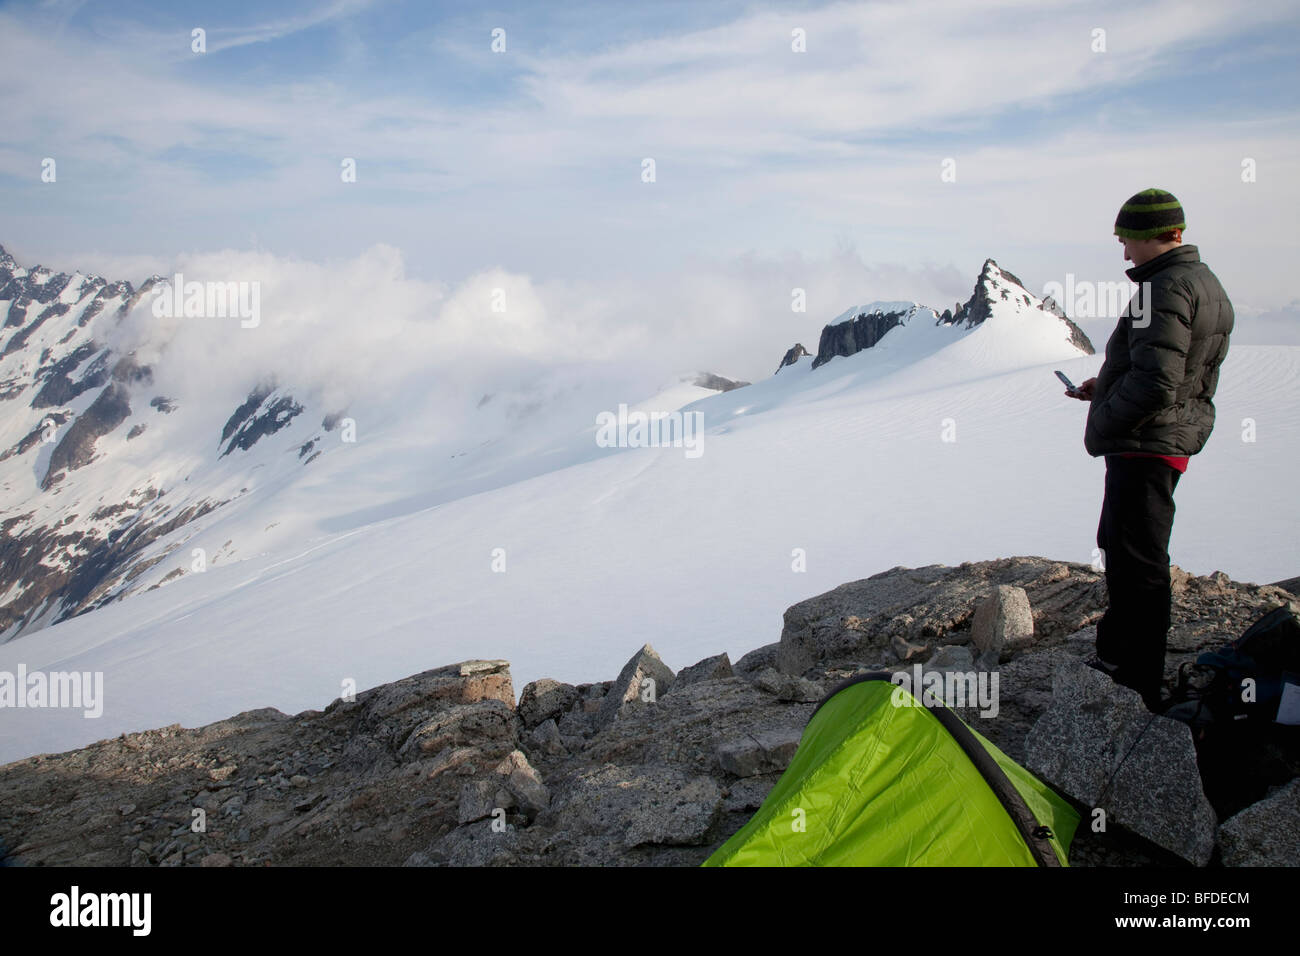 Young climber checks his cell phone for coverage while standing on a rock outcrop on a glacier with jagged peaks - Stock Image